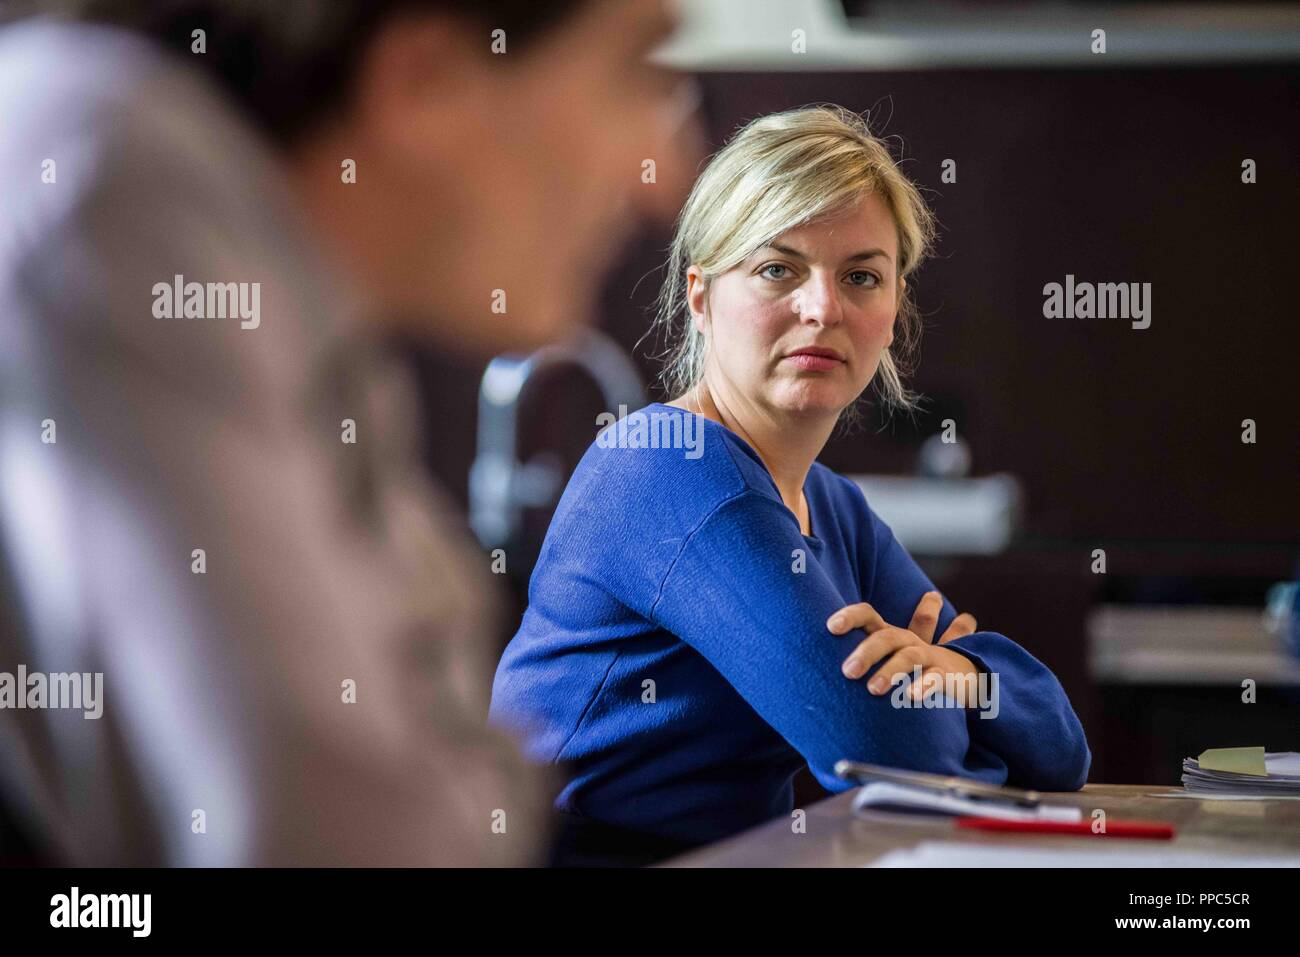 Munich, Bavaria, Germany. 25th Sep, 2018. KATHARINA SCHULZE of the Green Party looks on while ATES GUERPINAR of die Linke speaks. Citing the increasing politics of fear and attacks on civil and human rights, some 55 civil groups, organizations, and political parties have organized a follow up to the successful Munich NoPAG demonstration against the PAG Police Assignment Laws. The groups state that the increasingly exclusionary and populistic politics of the CSU and the AfD, along with the Polizeiaufgabengesetze (PAG Police Assignment Laws) are turning citizens into objects, which is a p - Stock Image